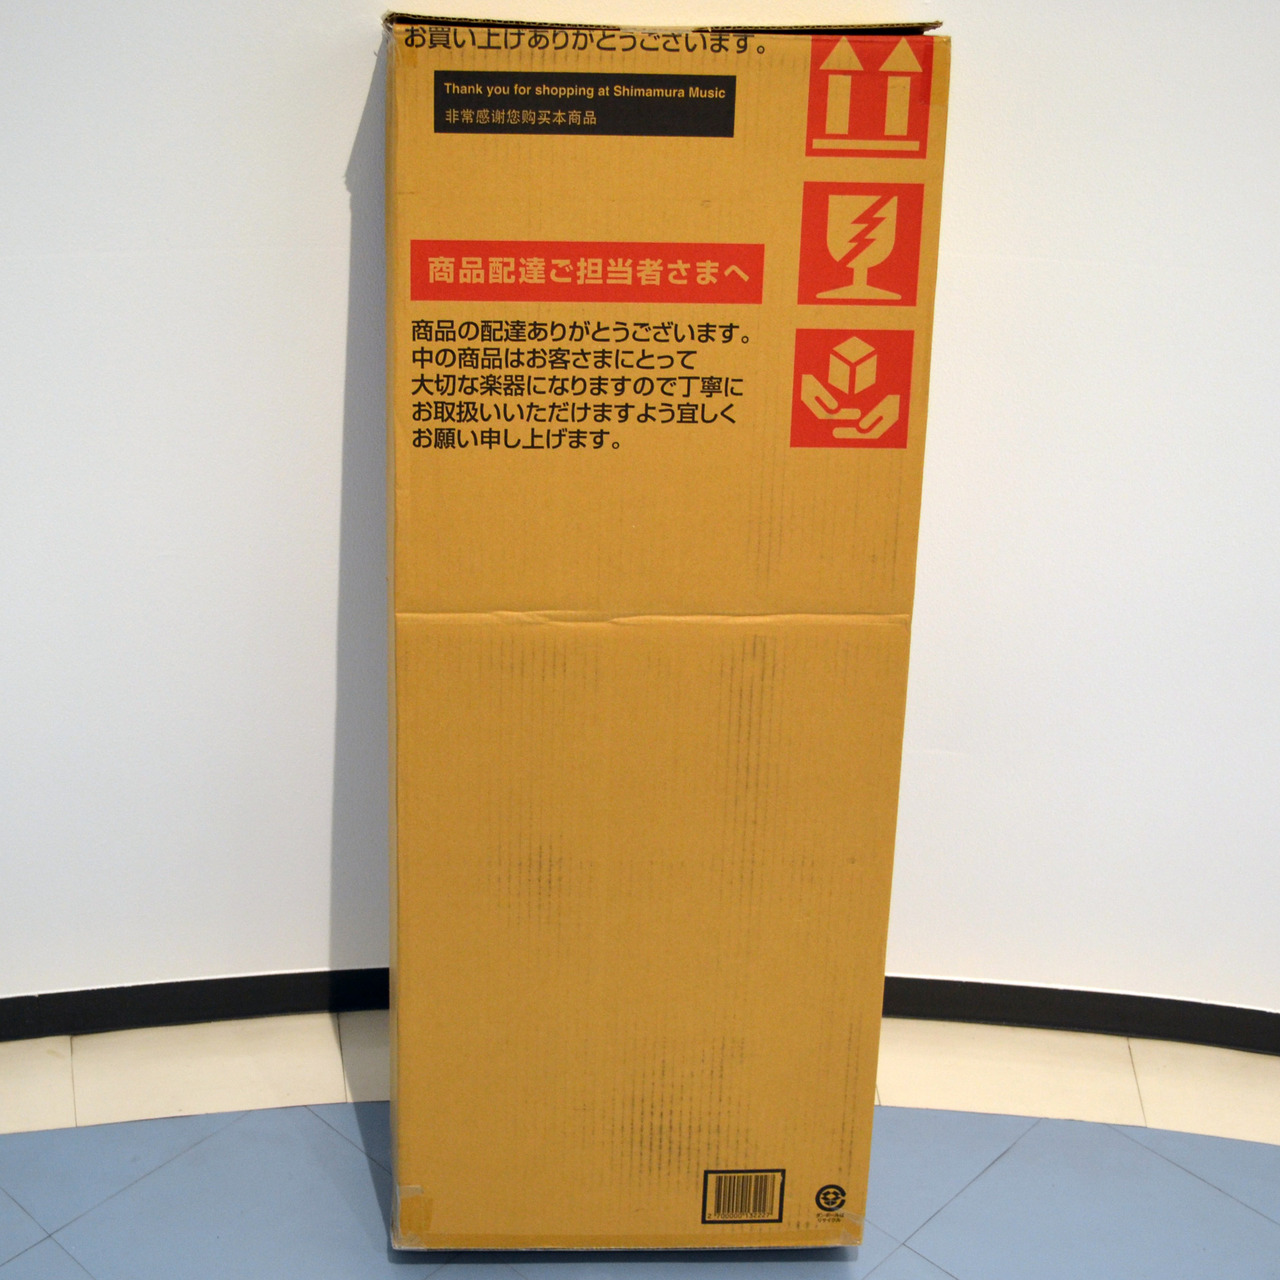 Shimamura musical instrument electric guitar, a cardboard box 1 box for bass [Kumamoto Parco shop]